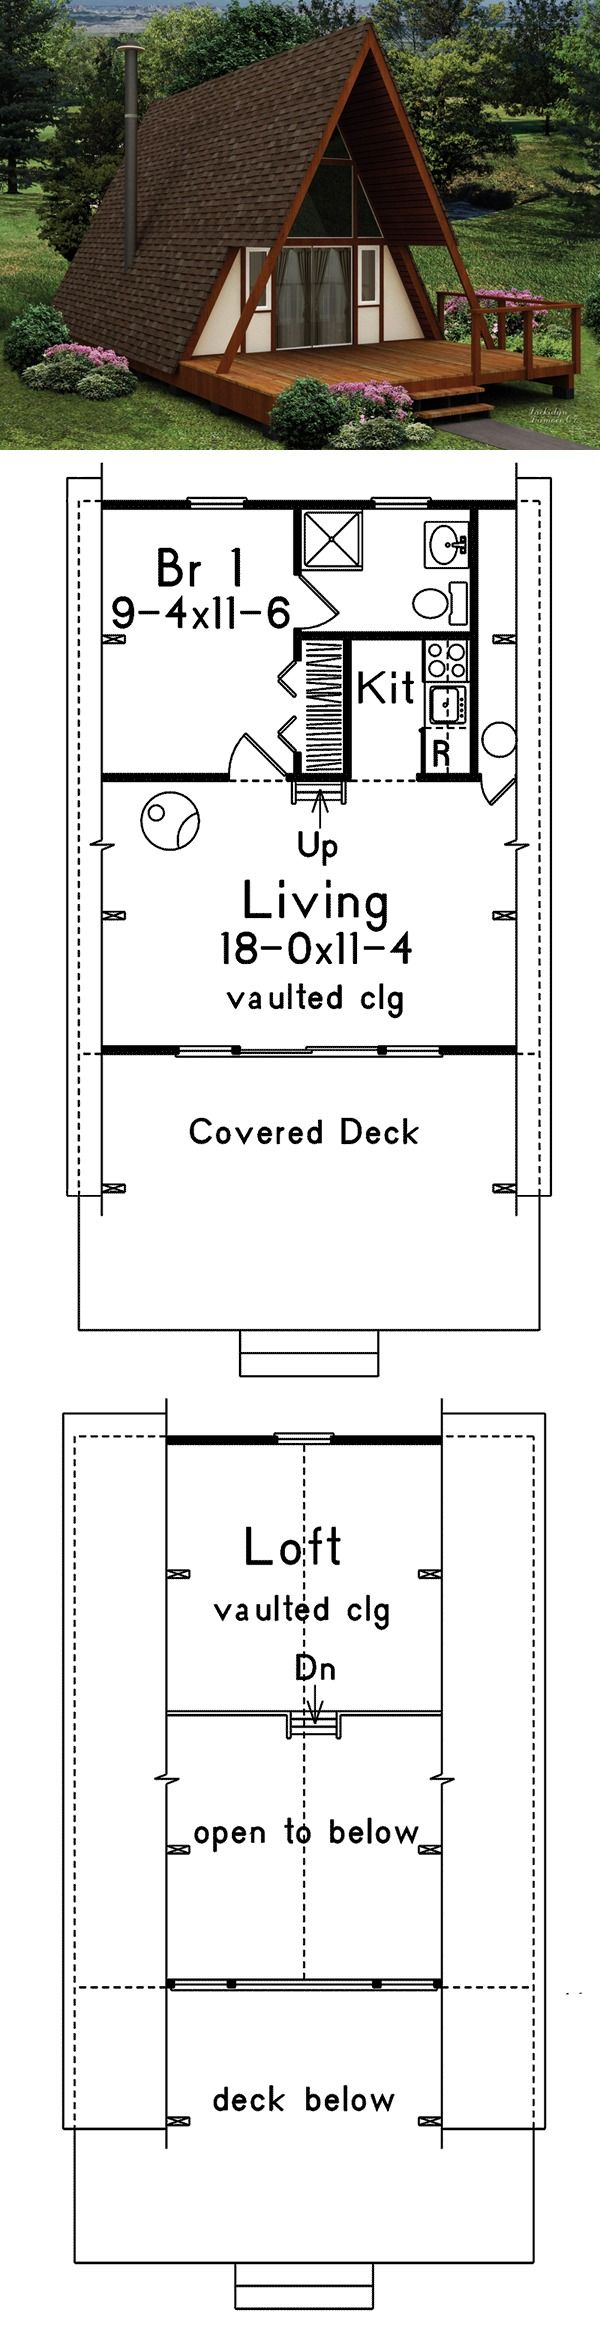 17 best images about floor plans on pinterest water for 592 plan